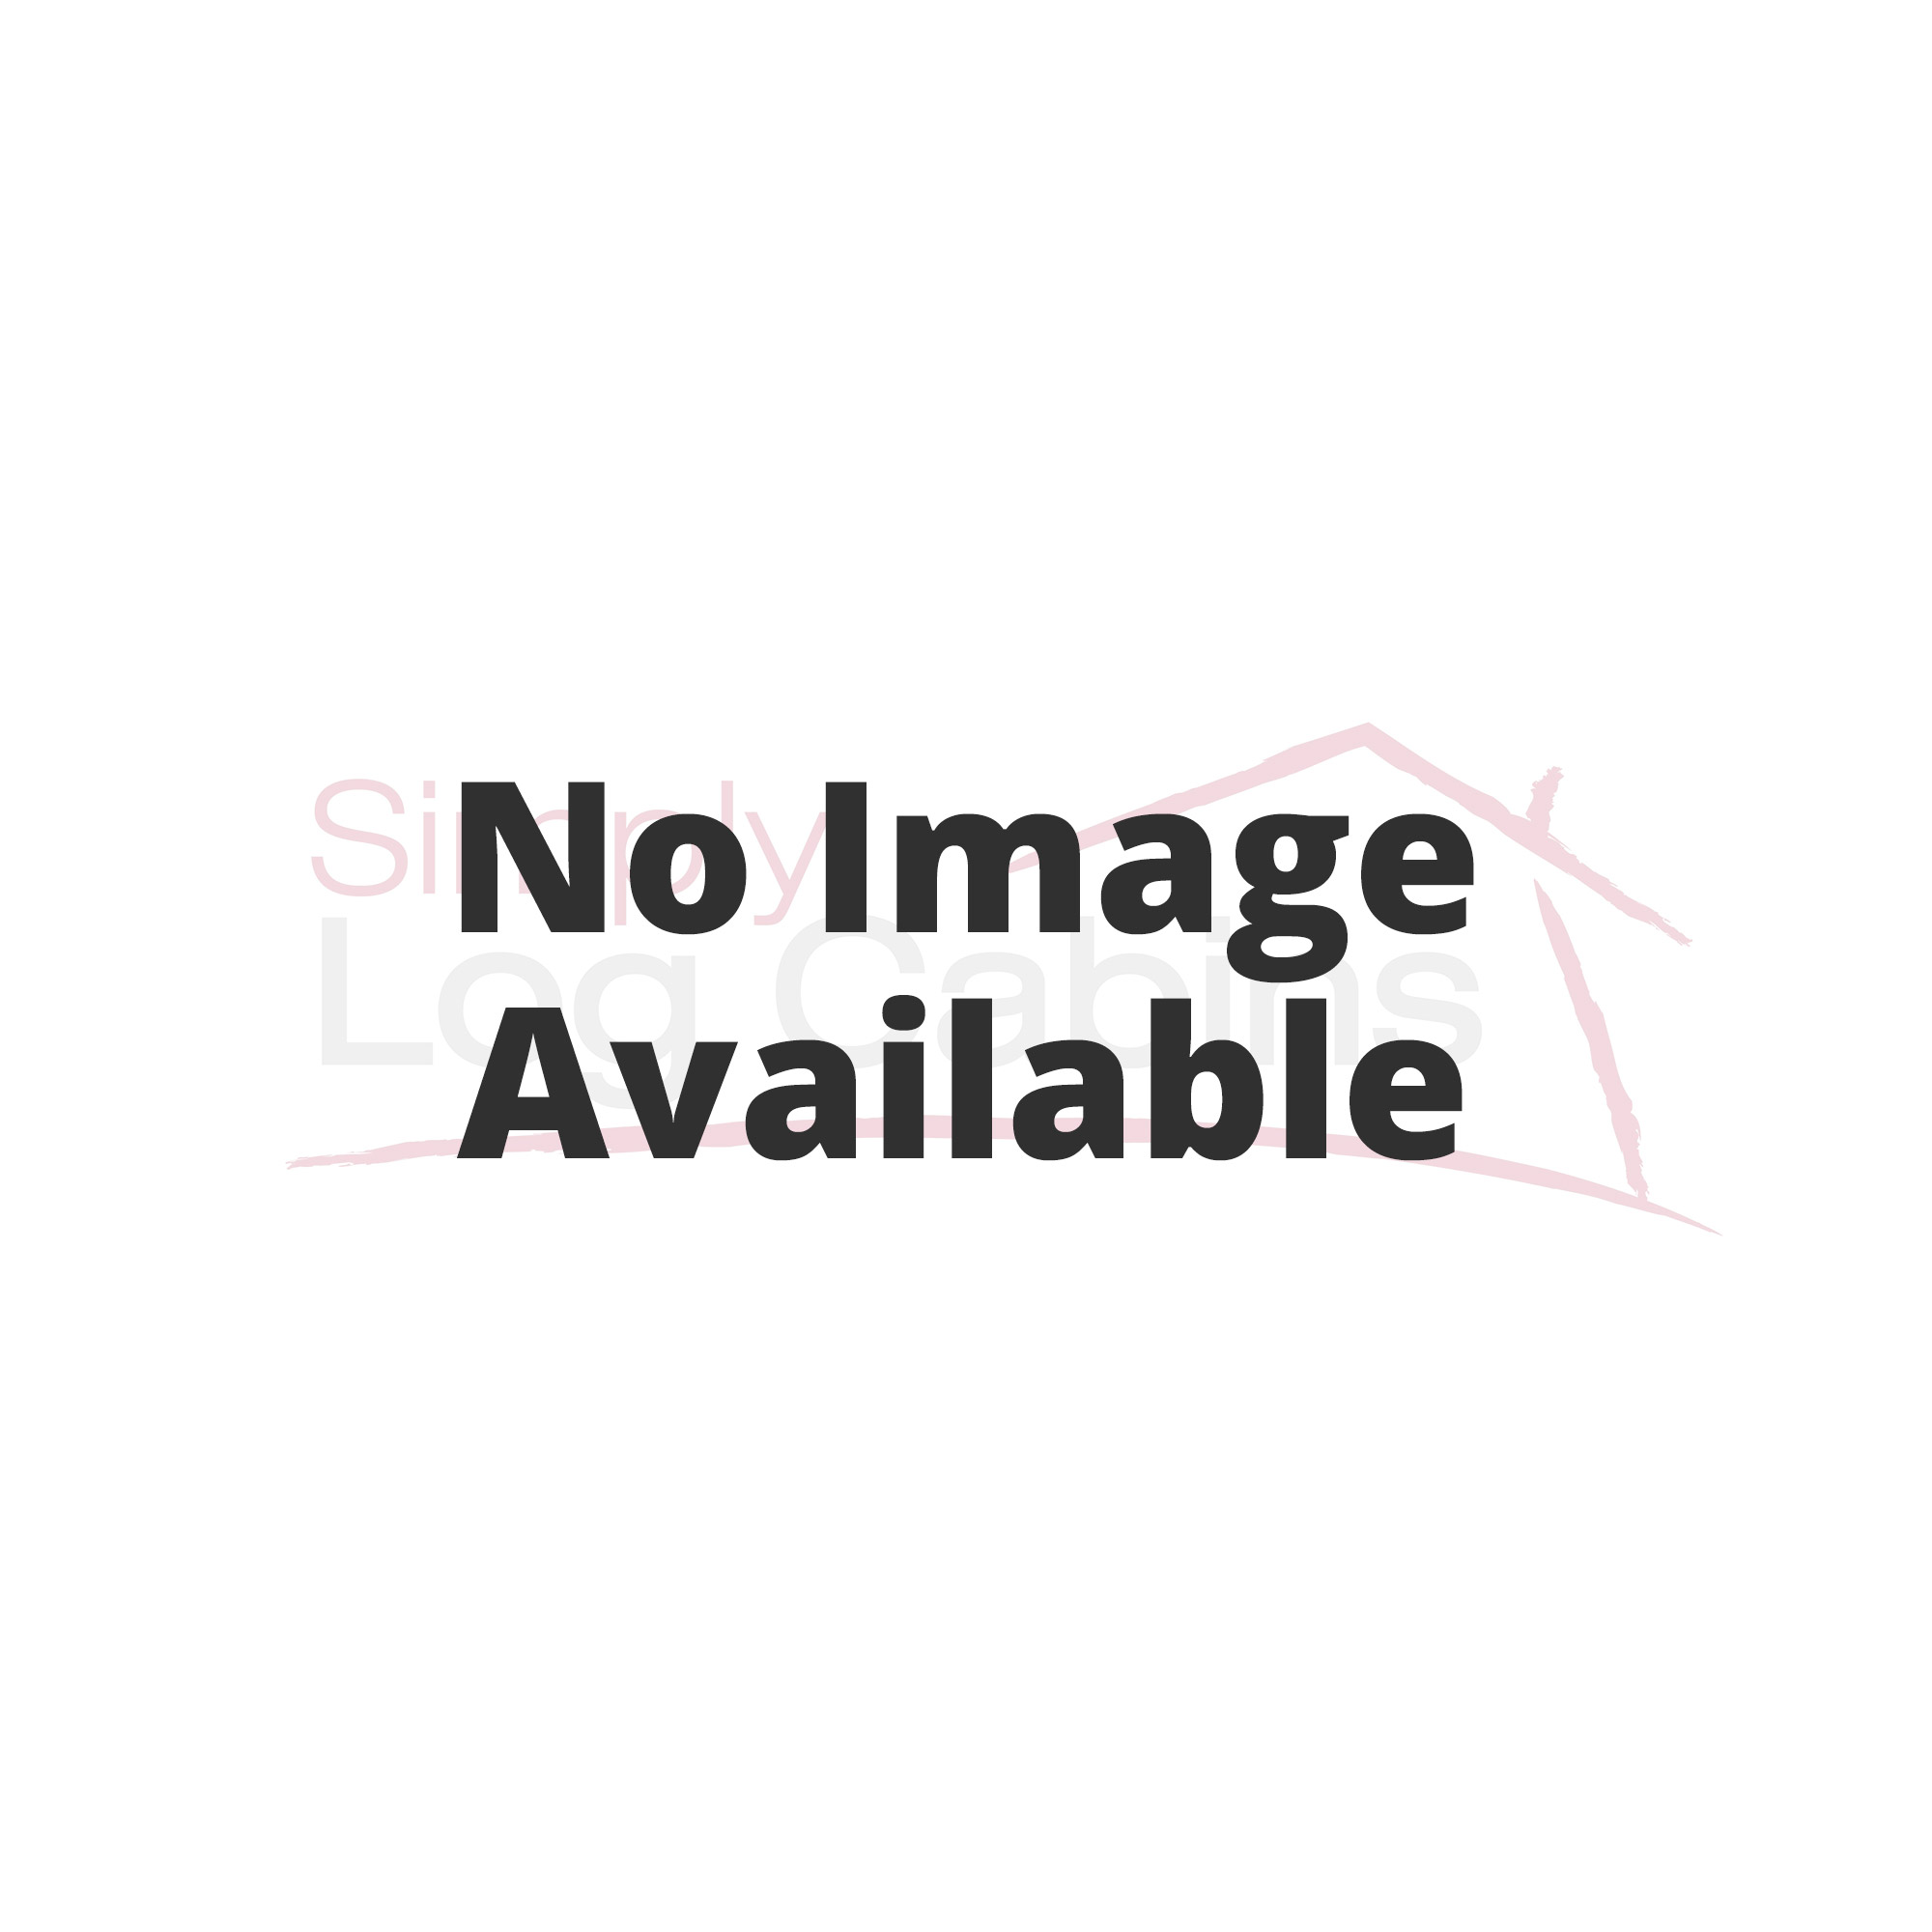 Forest garden henley fsc summer house 8 sided hexagonal for Pictures of small houses with garden